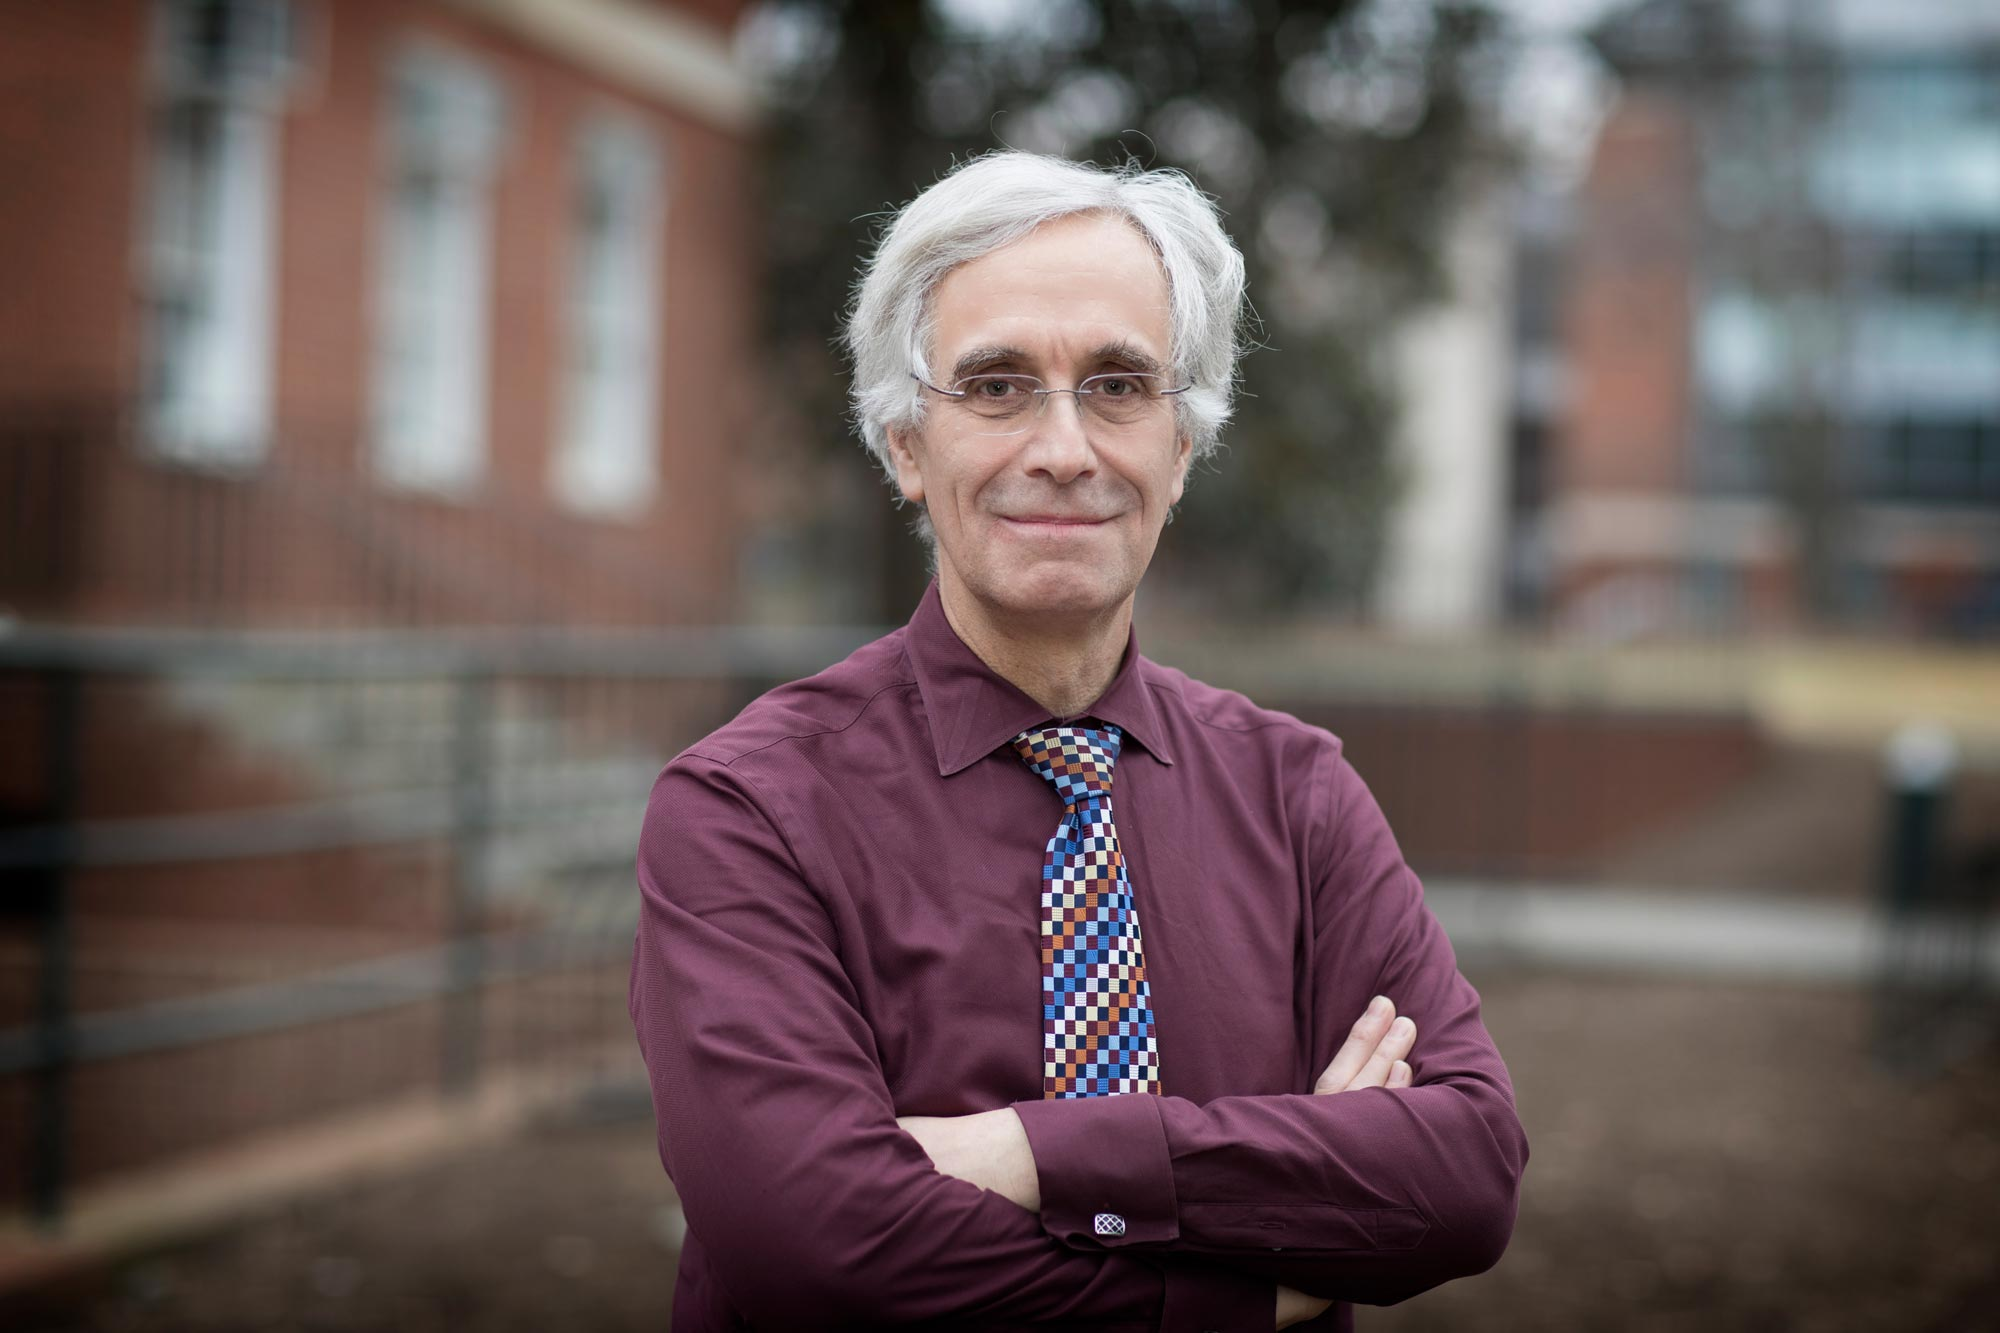 Lou Bloomfield is a longtime professor of physics at the University. (Photo by Dan Addison, University Communications)